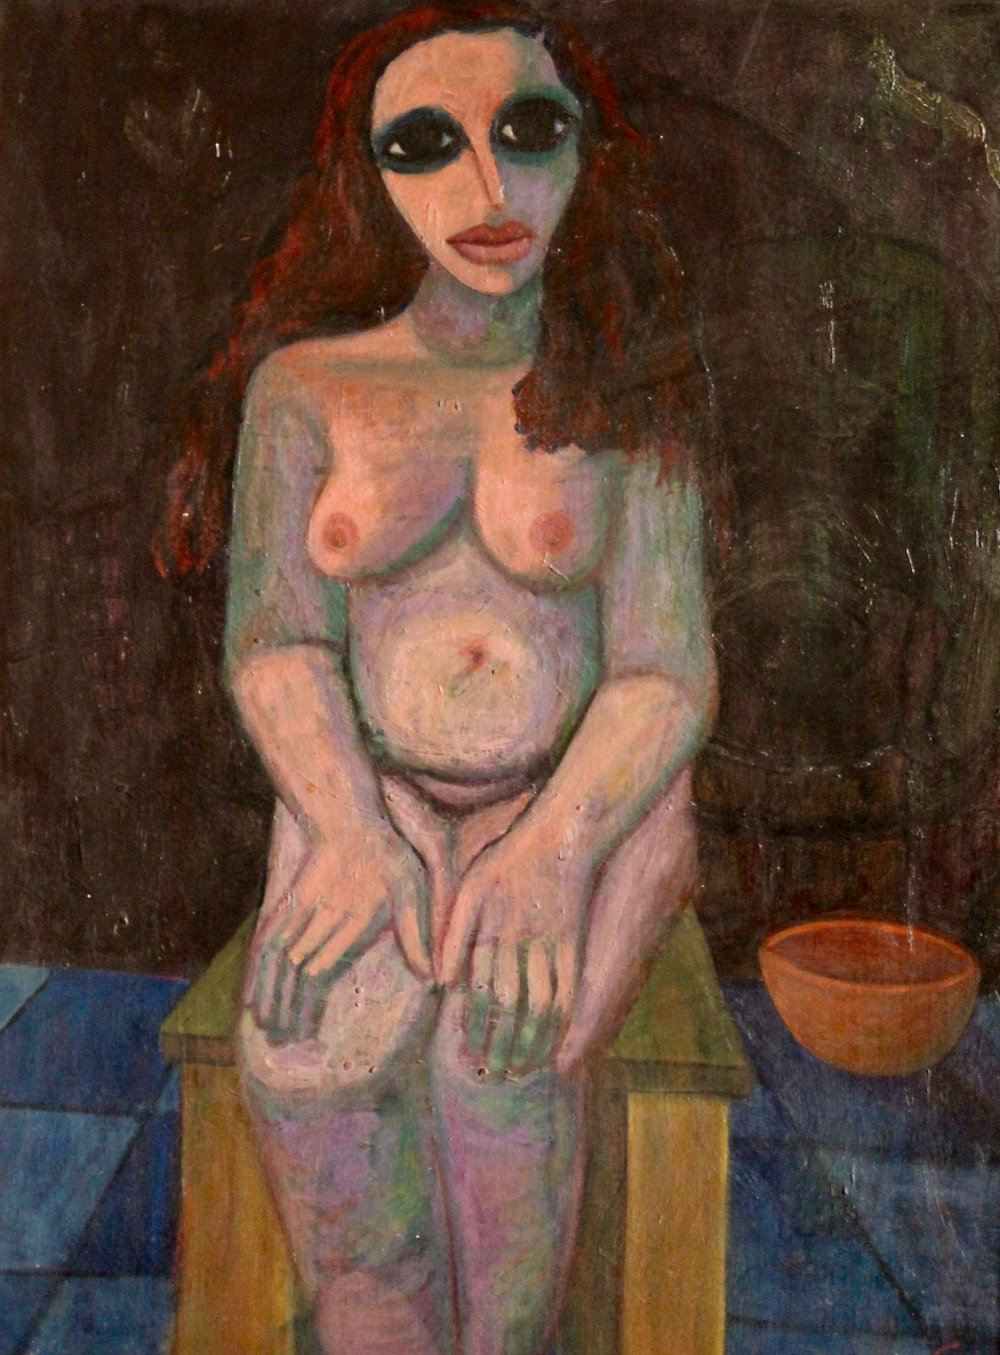 Ahmed_Morsi_Seated_Nude_1959 copy.jpg